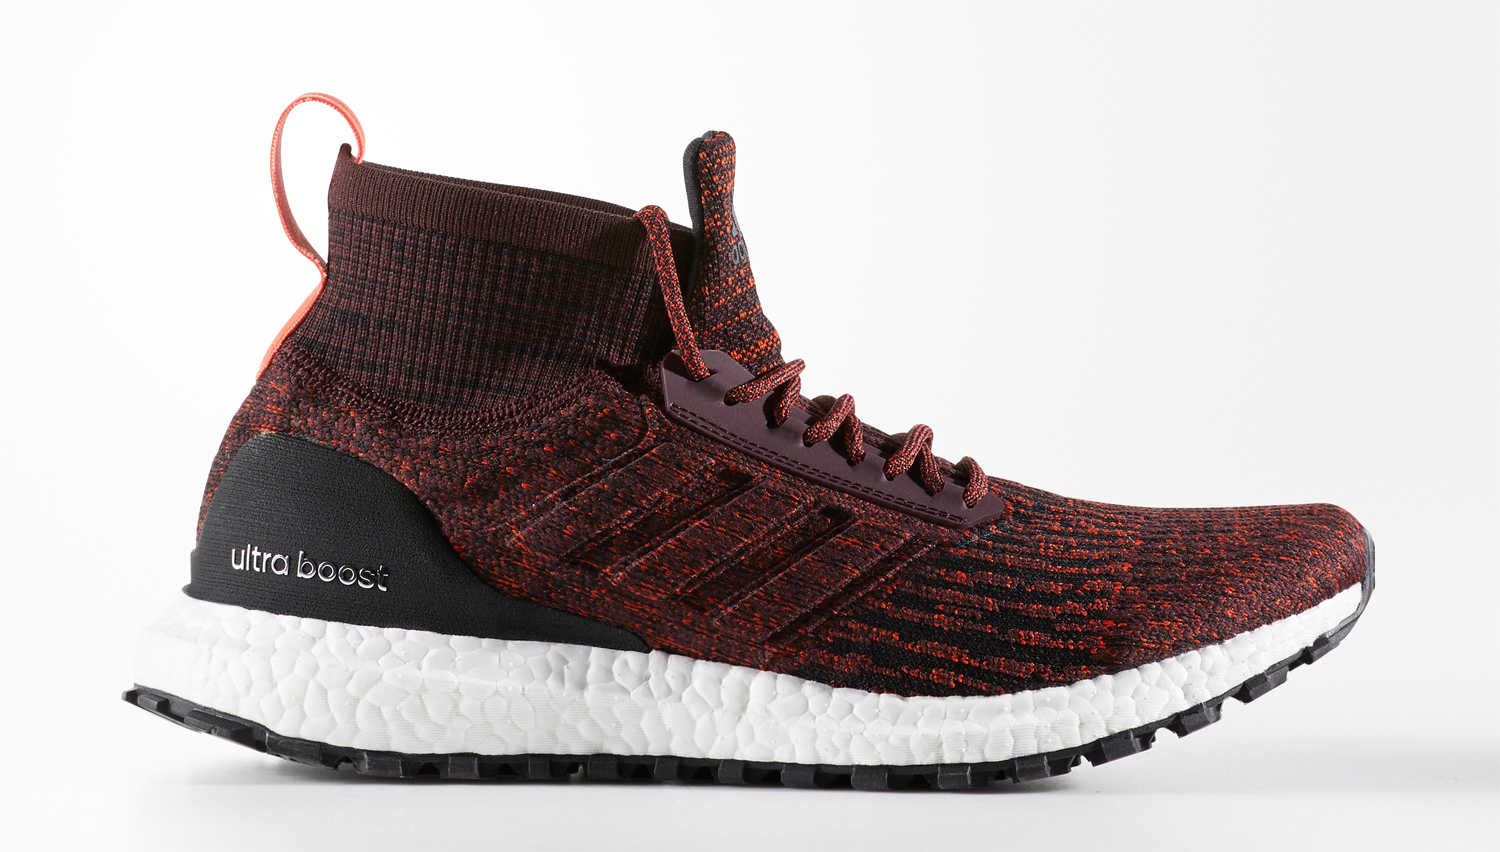 Adidas UltraBOOST X All Terrain Trainers